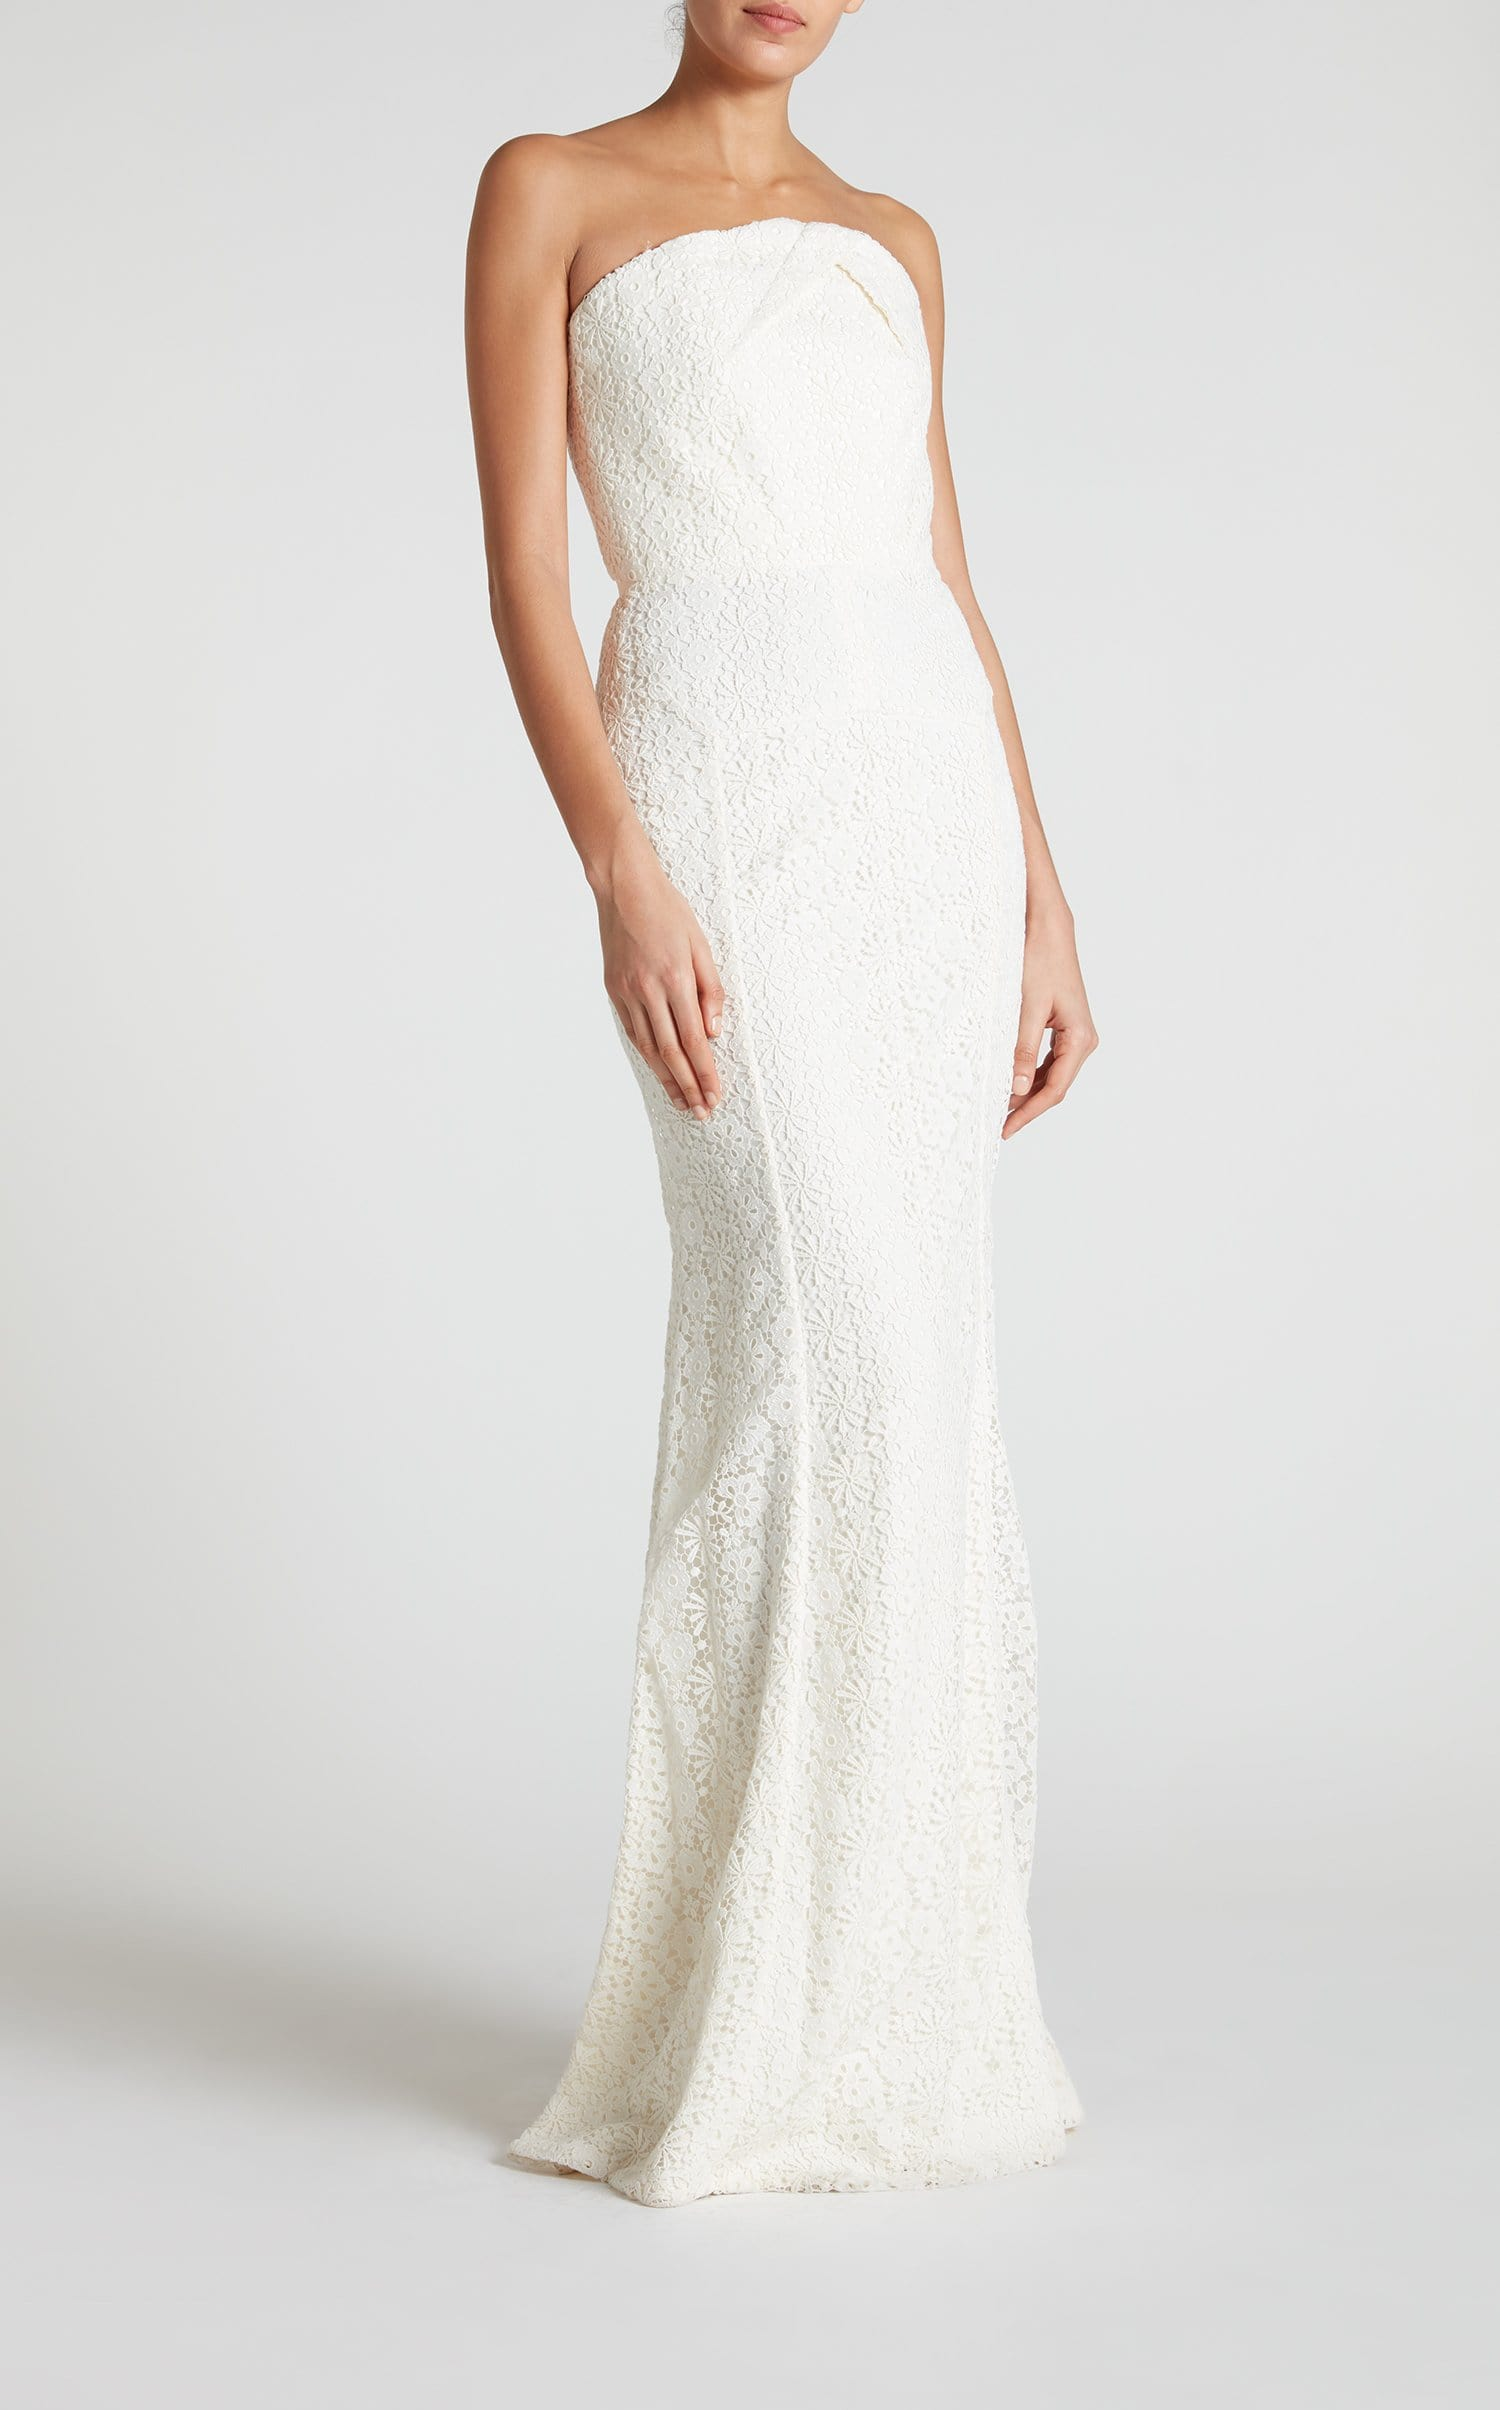 Bella Bridal Gown in Off-White Cotton Lace | Roland Mouret